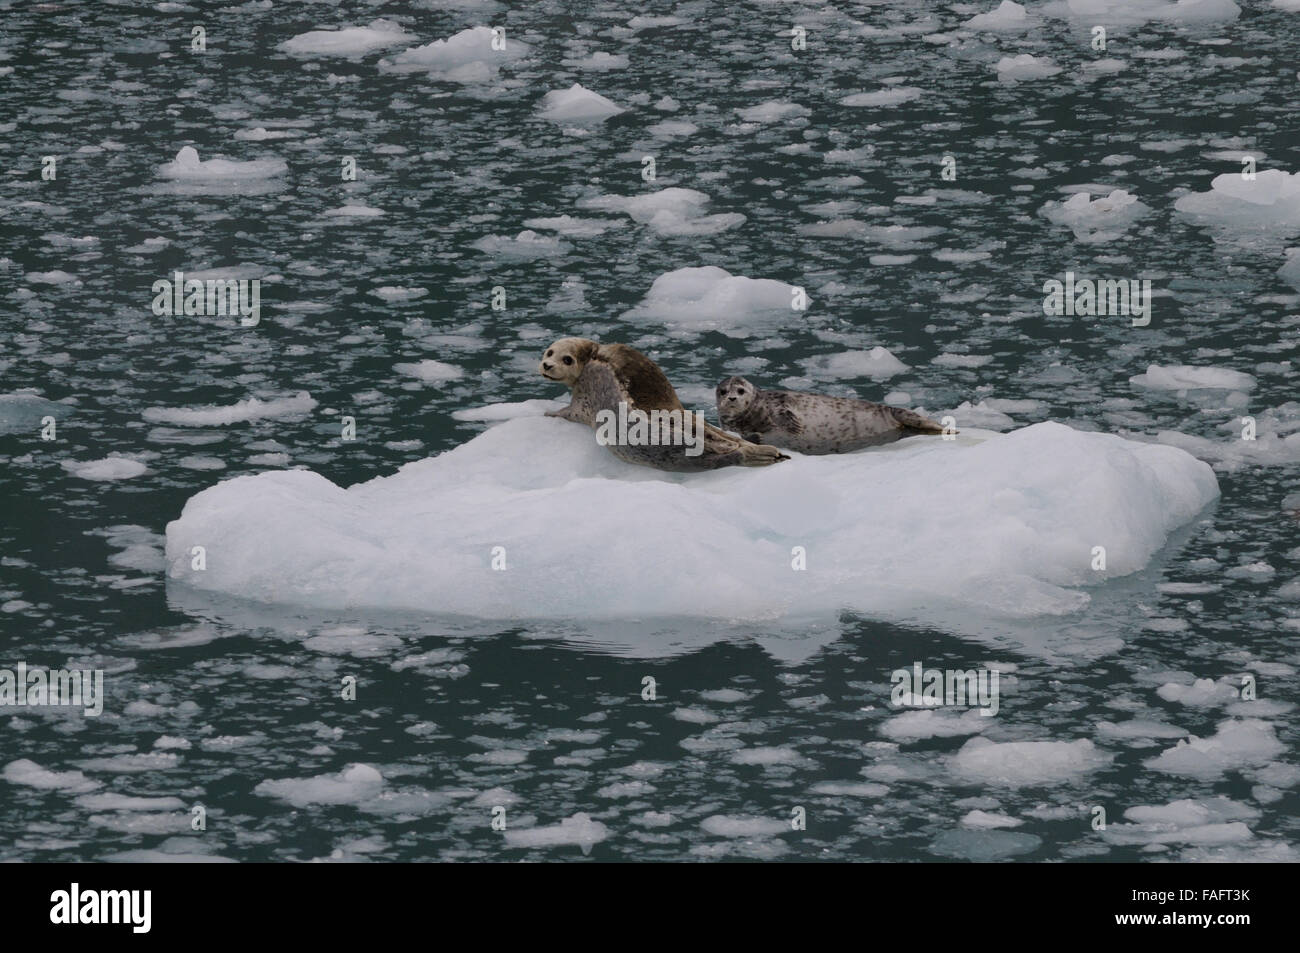 Mother Seal and Her Pup in Kenai Fjords National Park - Stock Image